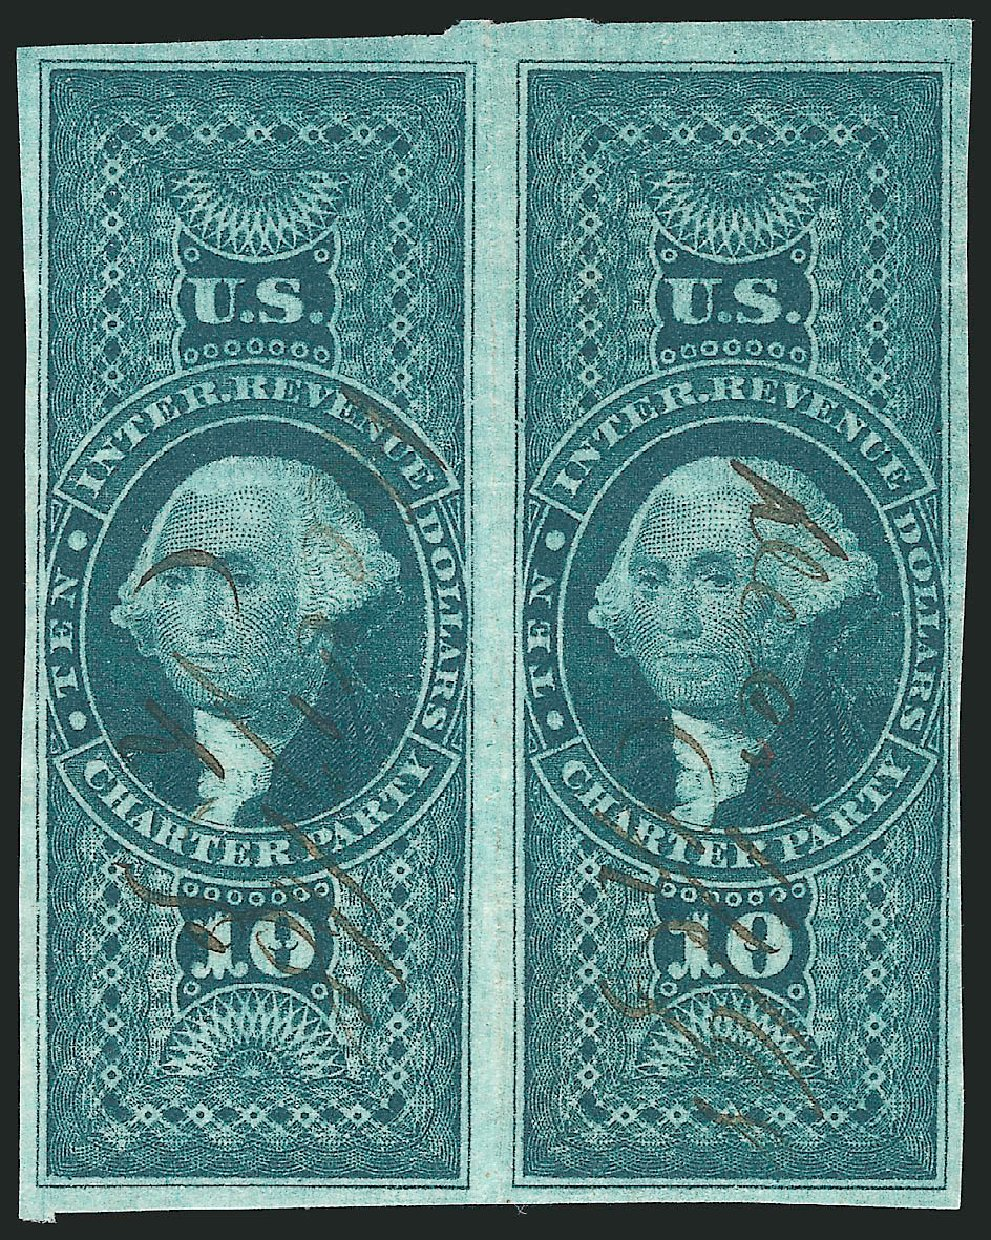 US Stamps Value Scott Catalogue R93: US$10.00 1862 Revenue Charter Party. Robert Siegel Auction Galleries, Dec 2014, Sale 1089, Lot 261